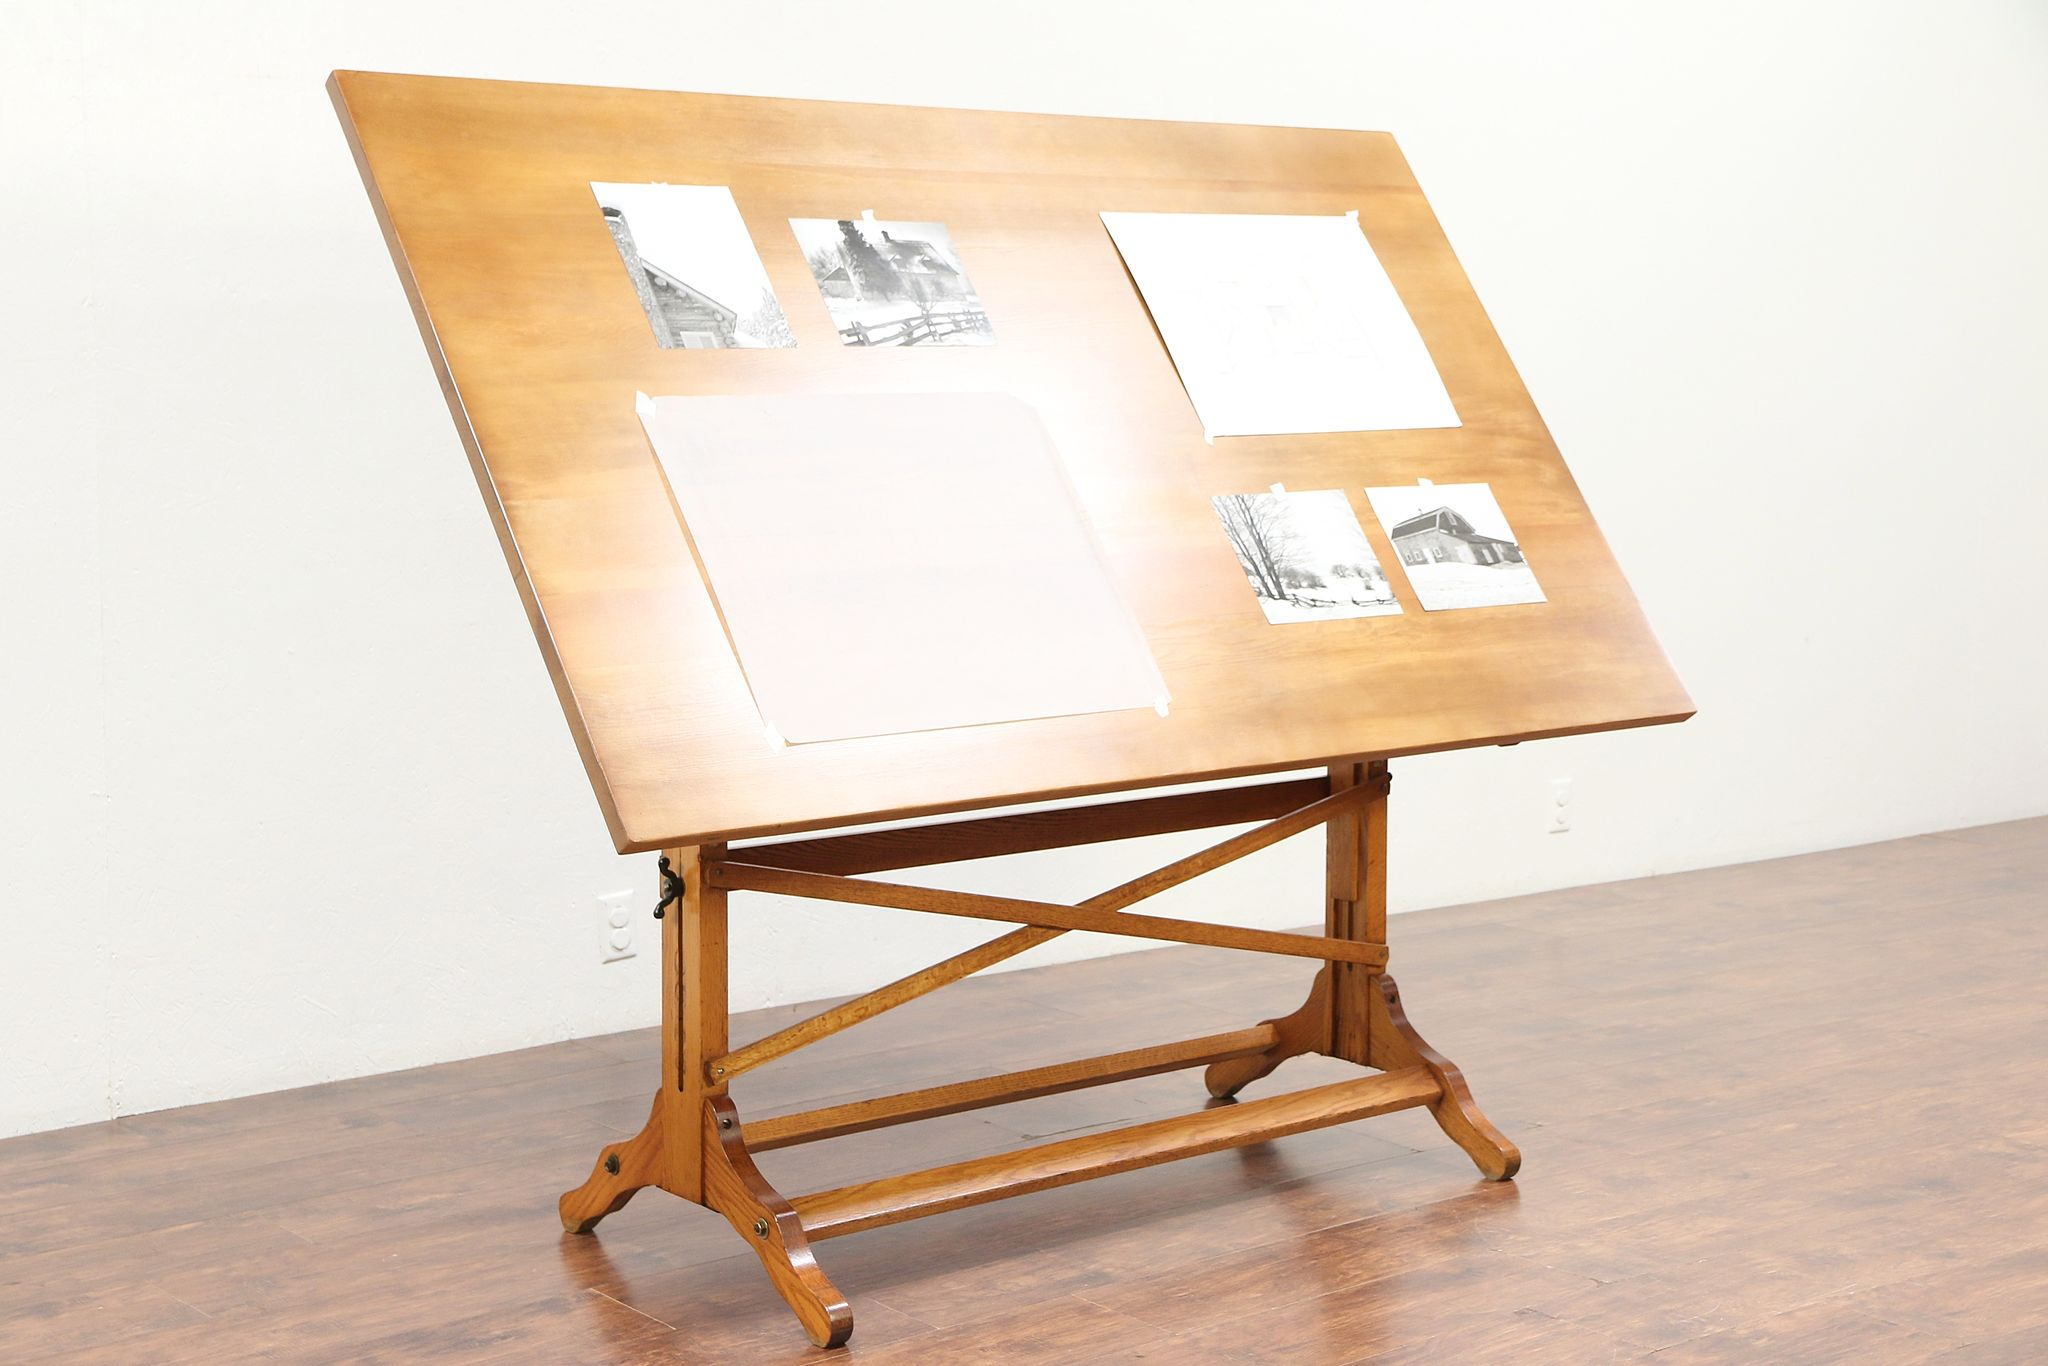 Sold Drafting Artist Desk Vintage Oak Pine Drawing Or Wine Cheese Table 29375 Harp Gallery Antiques Furniture